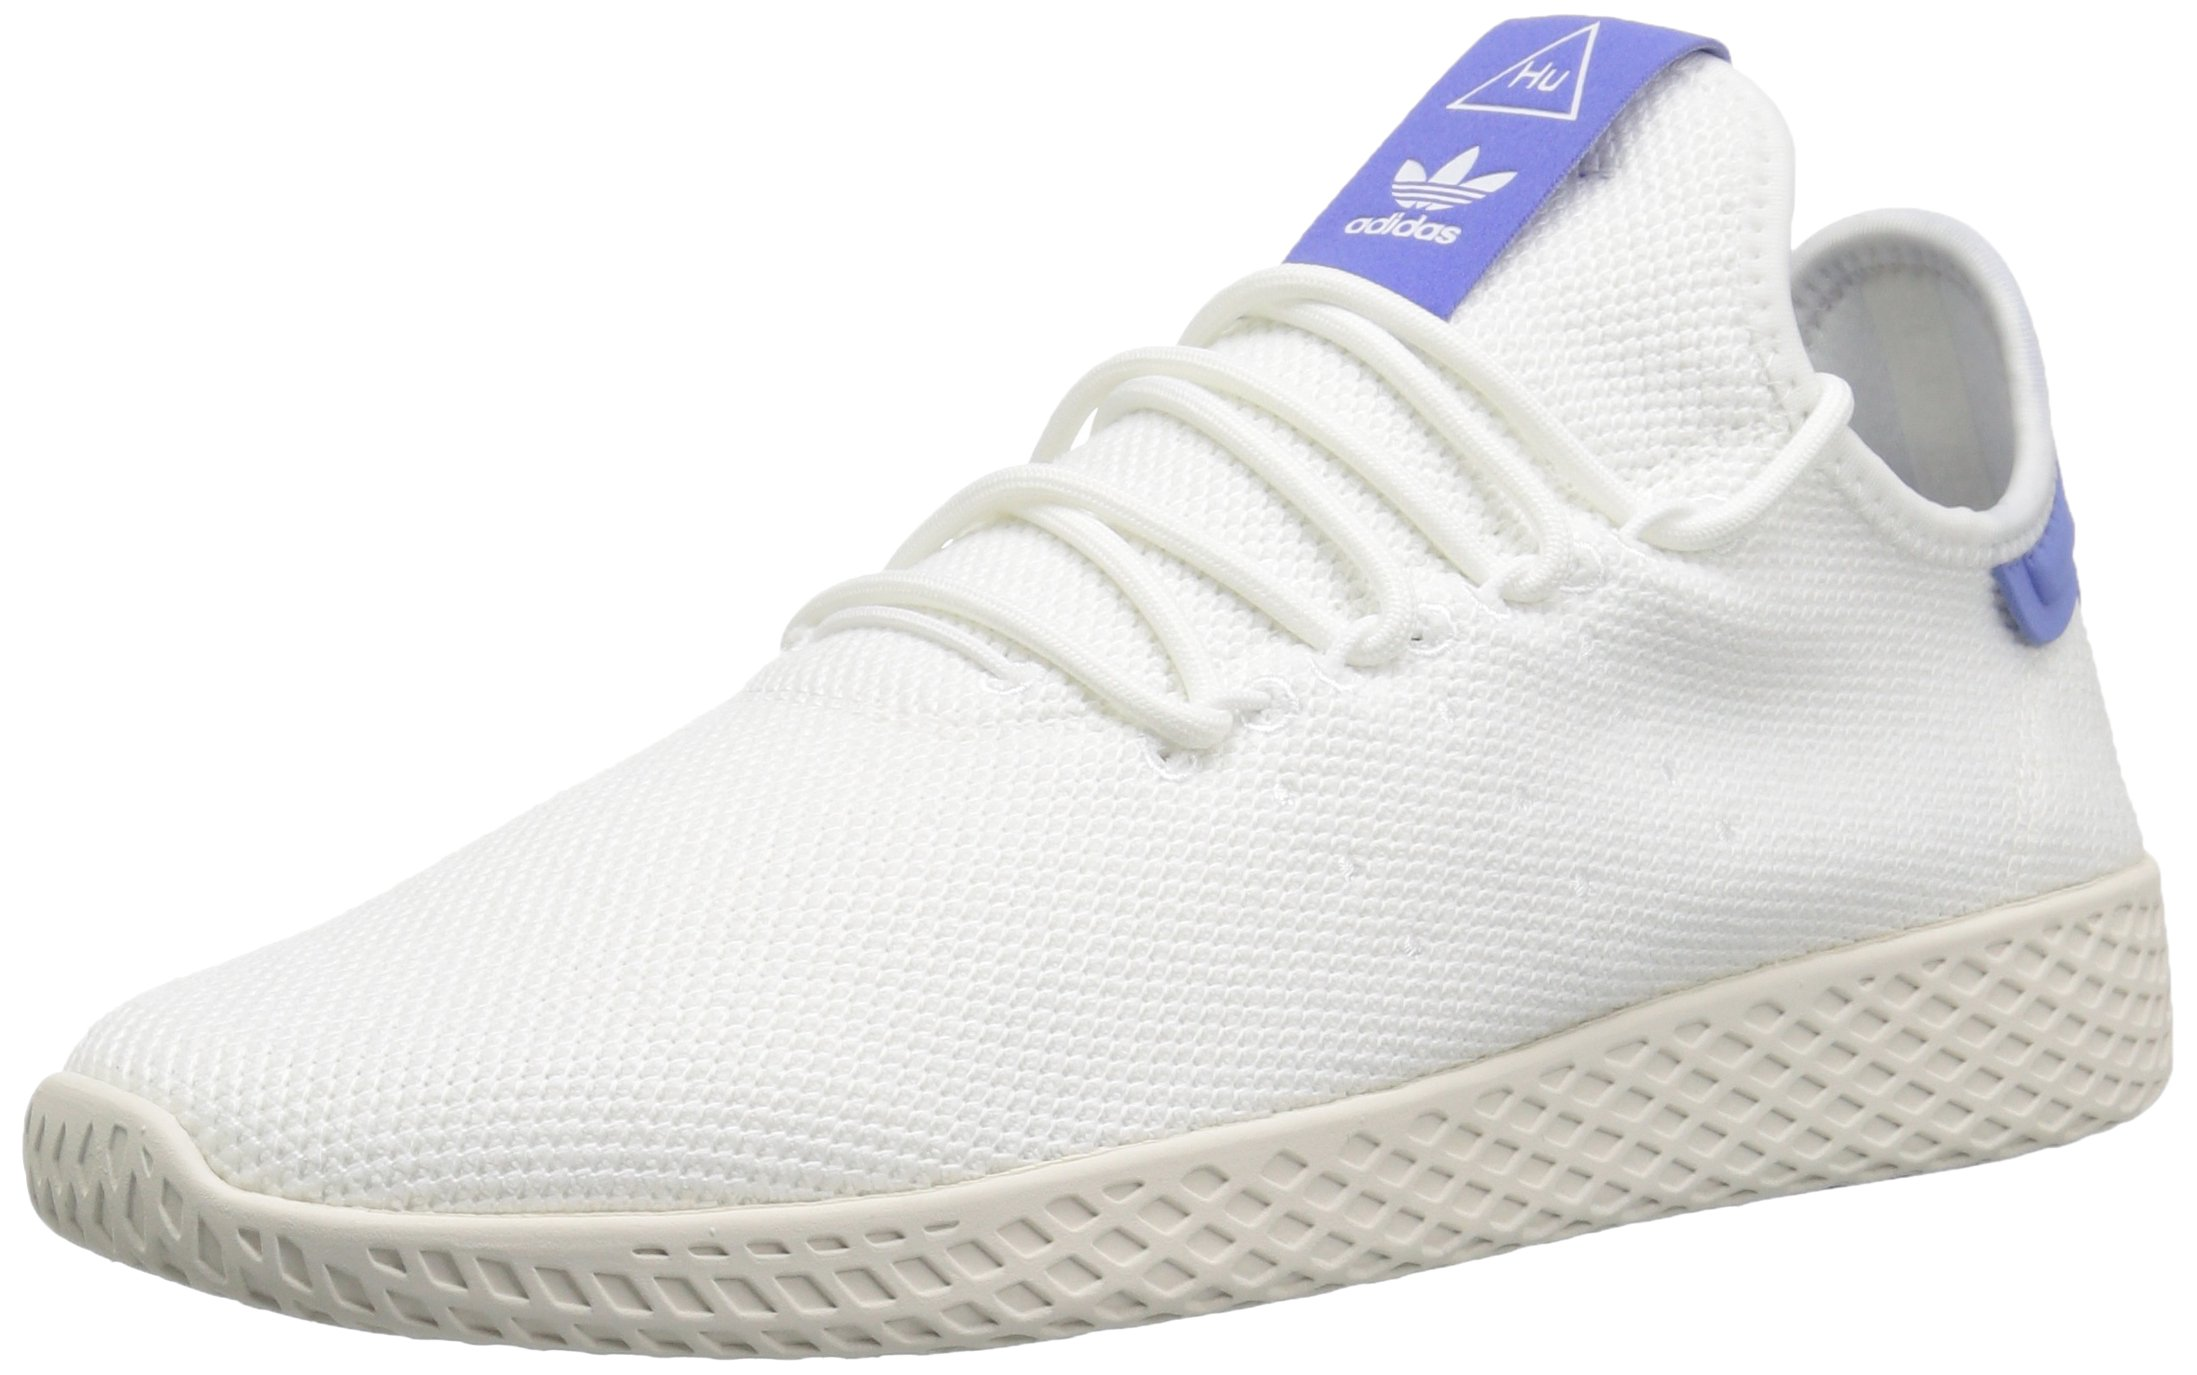 adidas Originals Men's Pharrell Williams Tennis HU Running Shoe, White/Chalk, 5.5 M US by adidas Originals (Image #1)